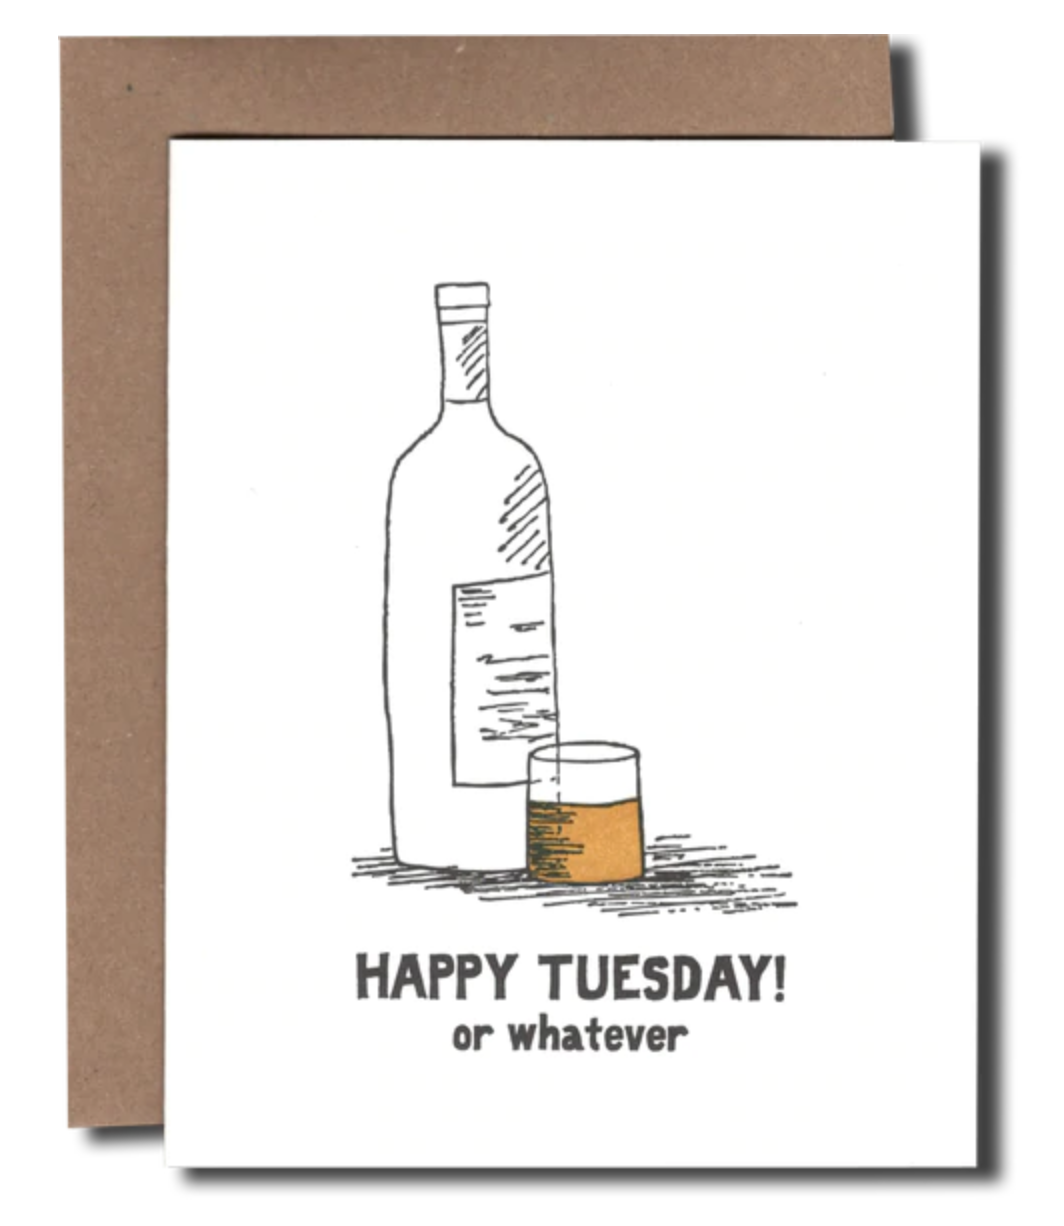 Power and Light Letterpress - PLL PLLGCHU0035 - Happy Tuesday